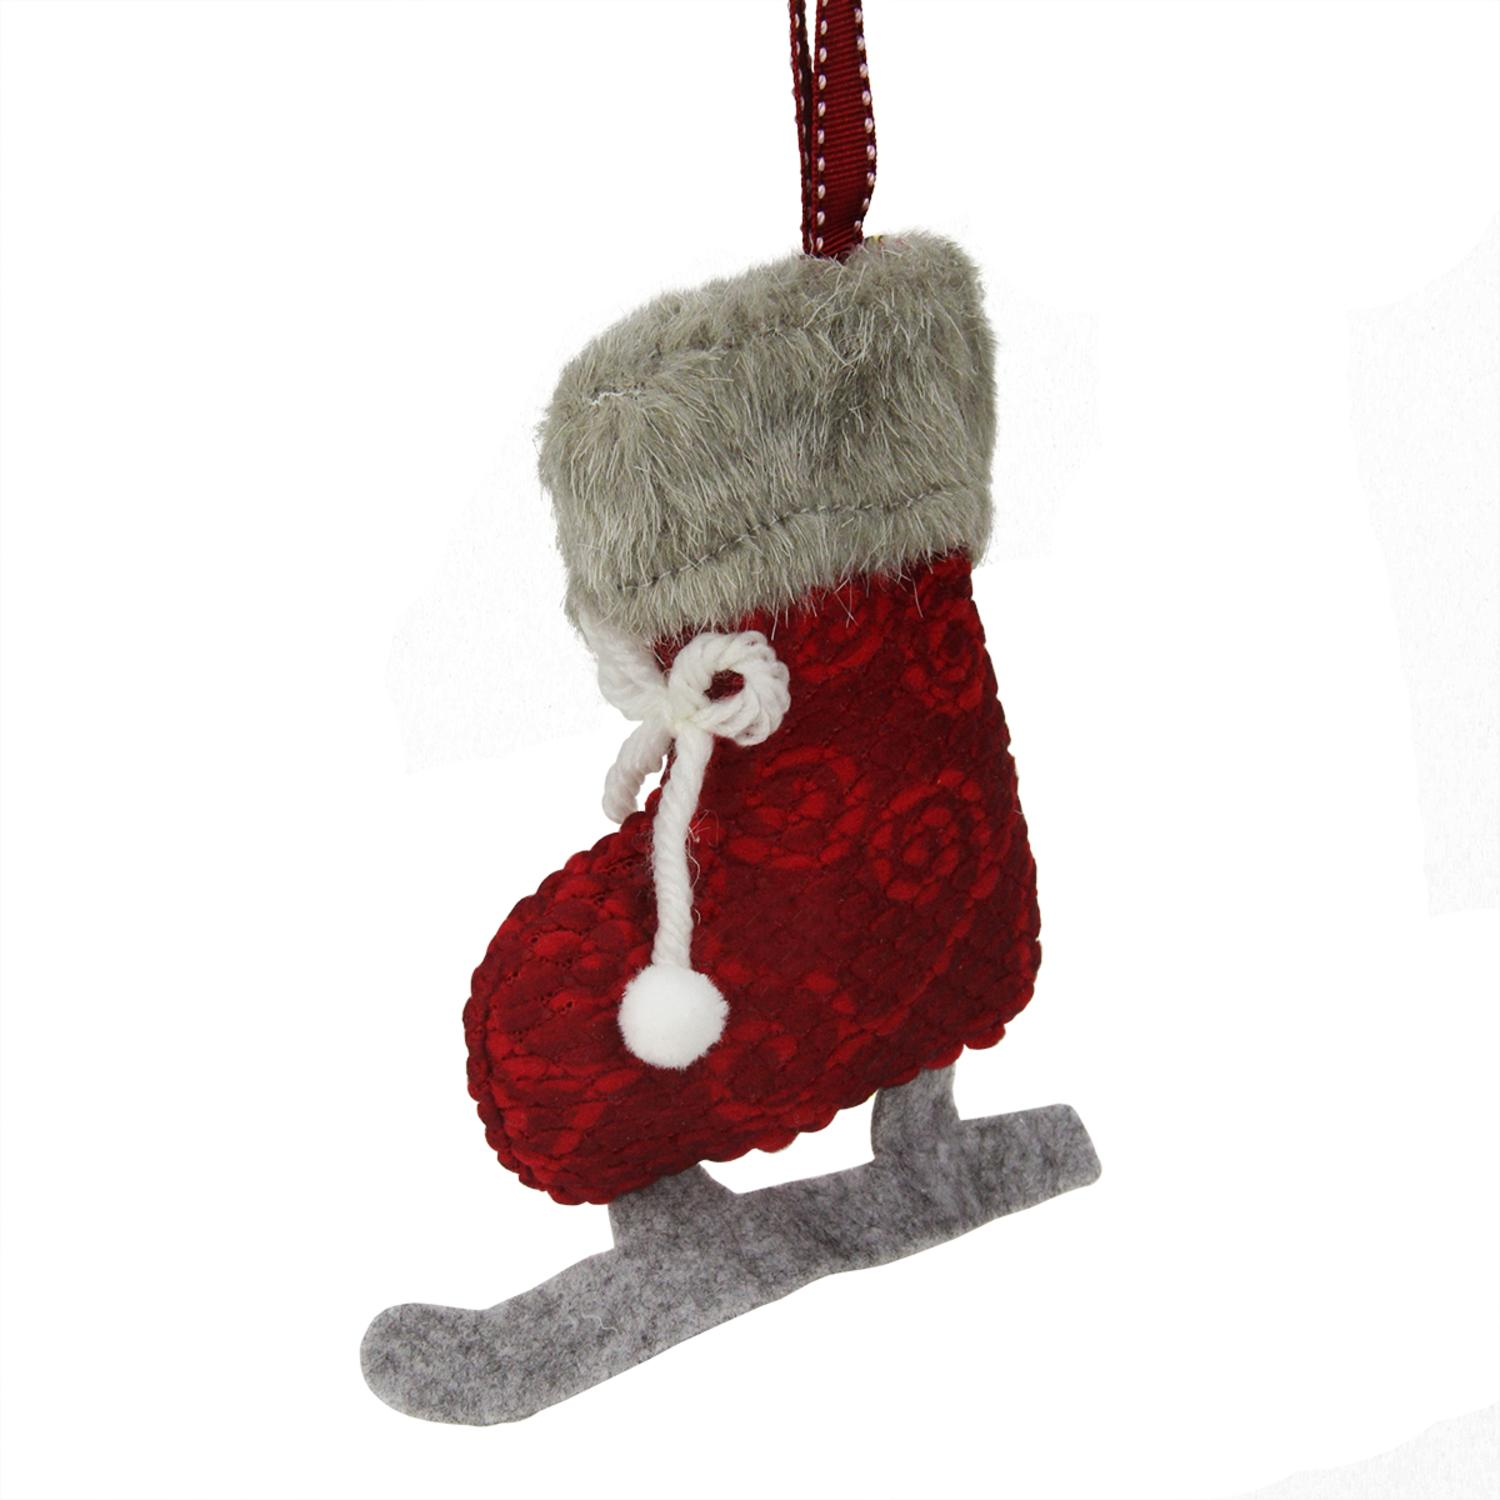 ''5.5'''' Red and Gray Plush Knit ICE SKATE Christmas Ornament''